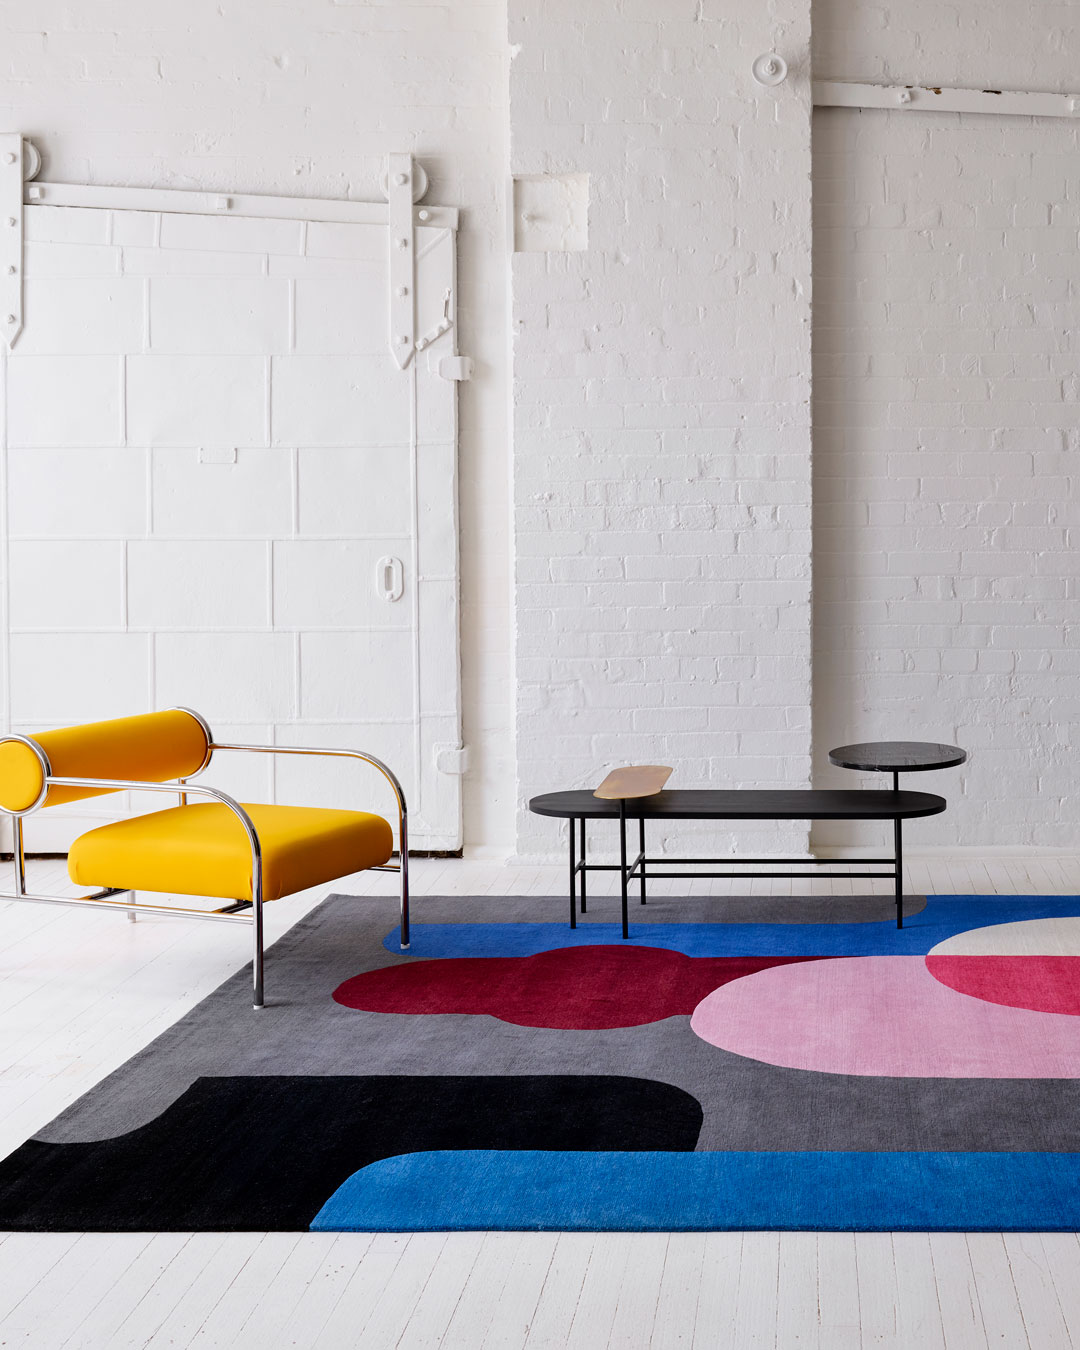 Styled image of geometric Twilight rug by Stephen Ormandy